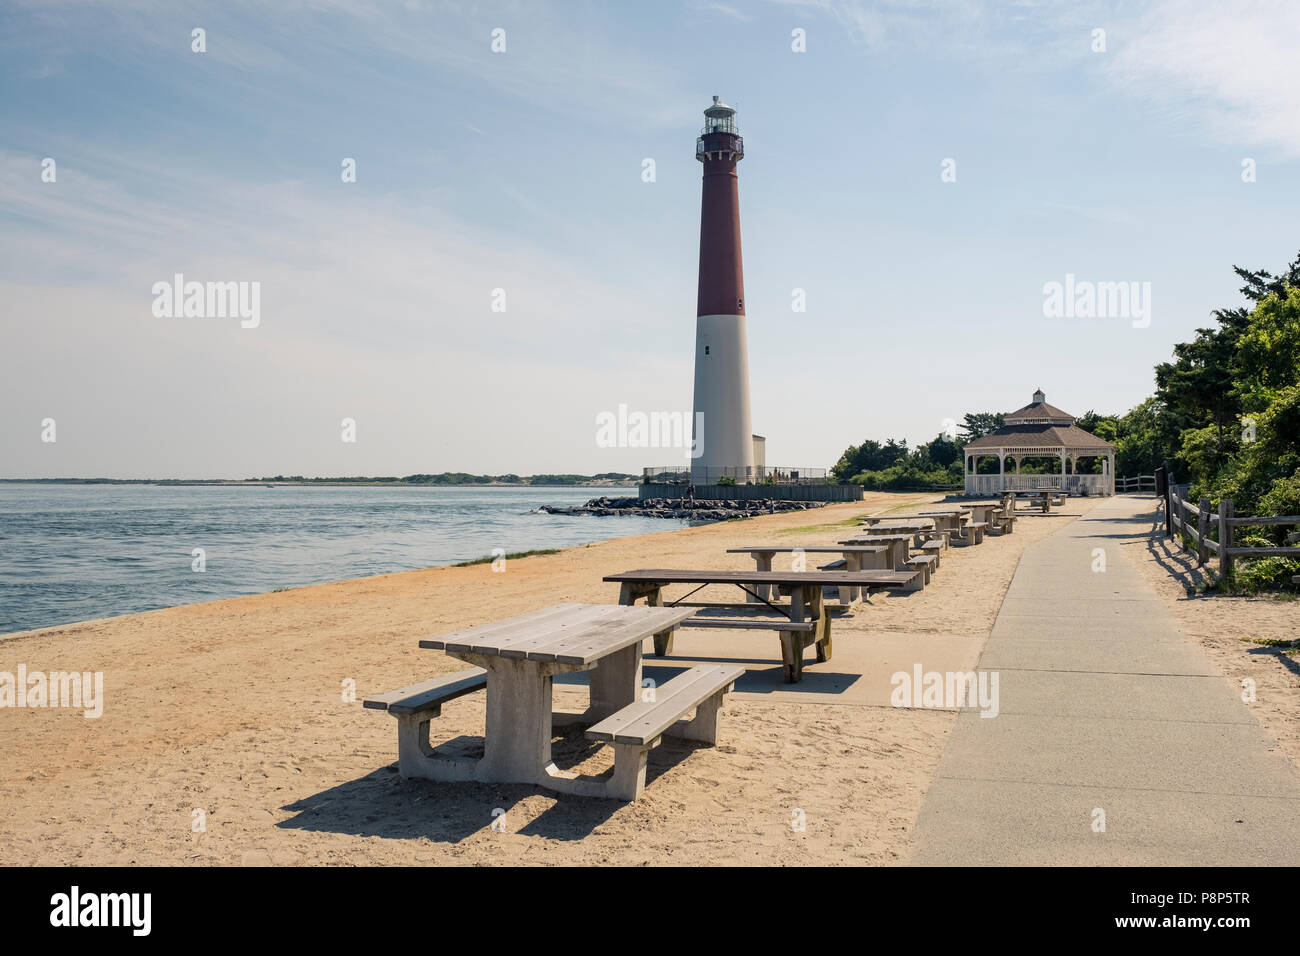 lighthouse in New Jersey provides warning light on island for ships navigating through ocean channels Stock Photo